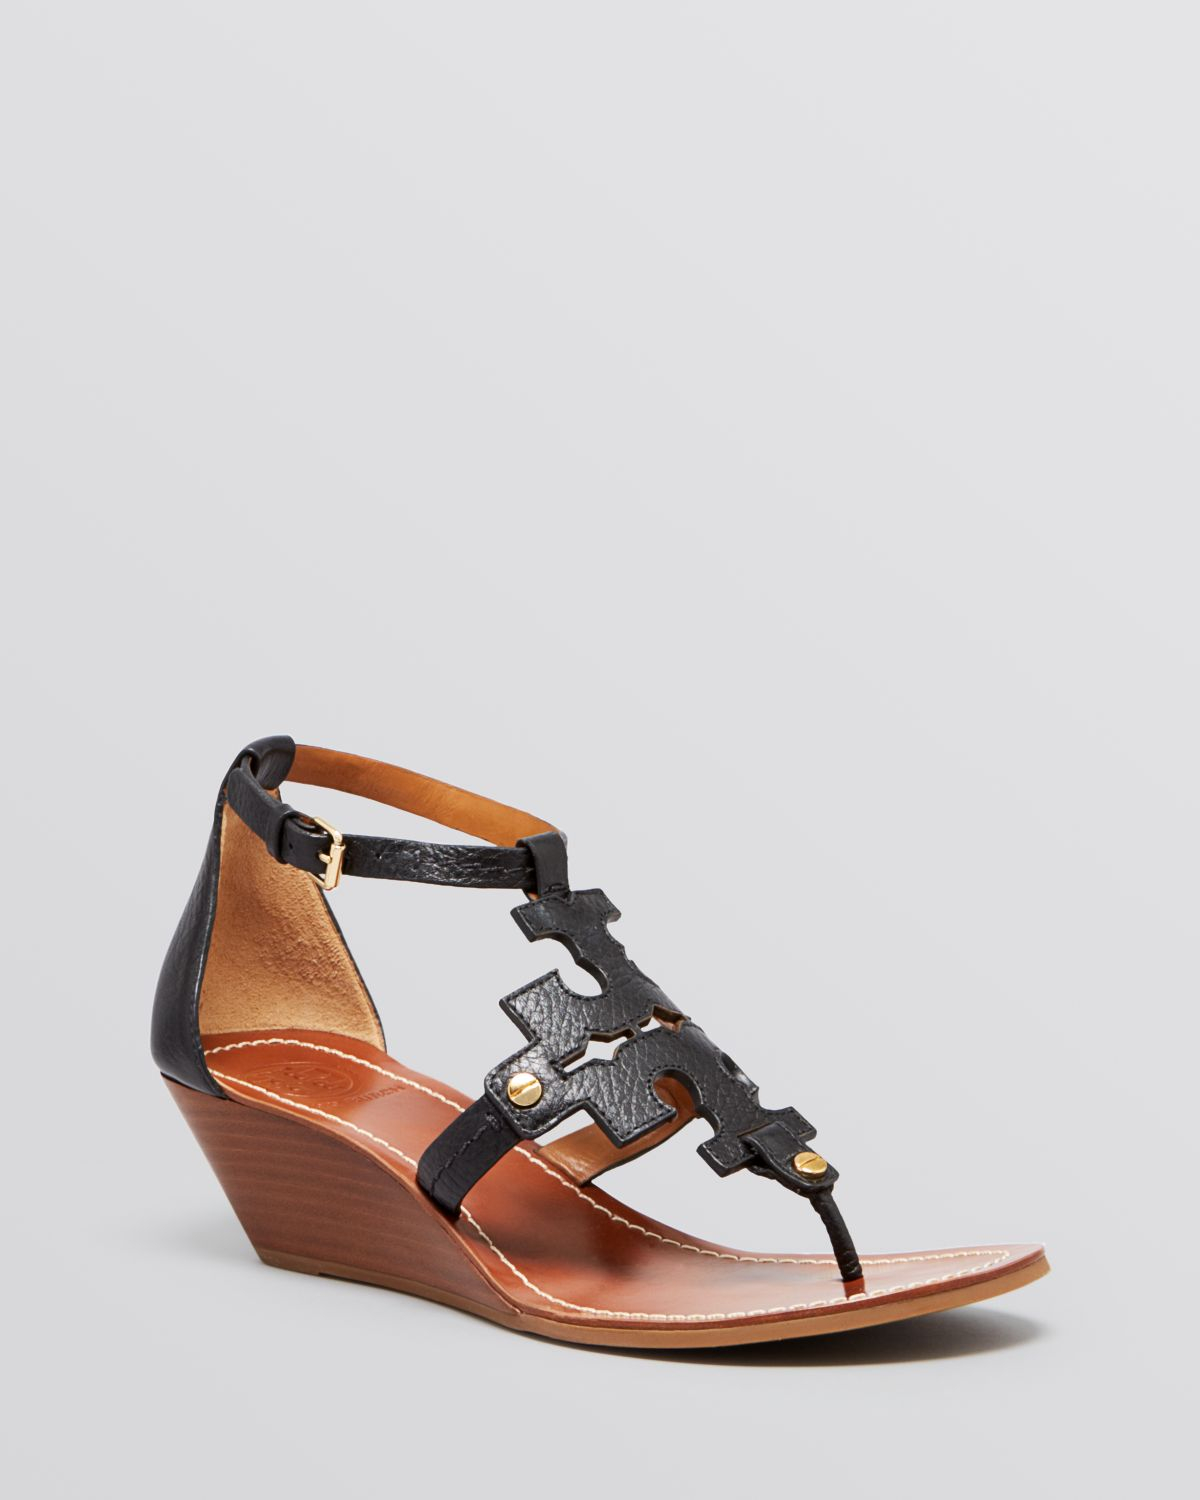 133ede86d13 Lyst - Tory Burch Wedge Sandals - Chandler Logo in Black